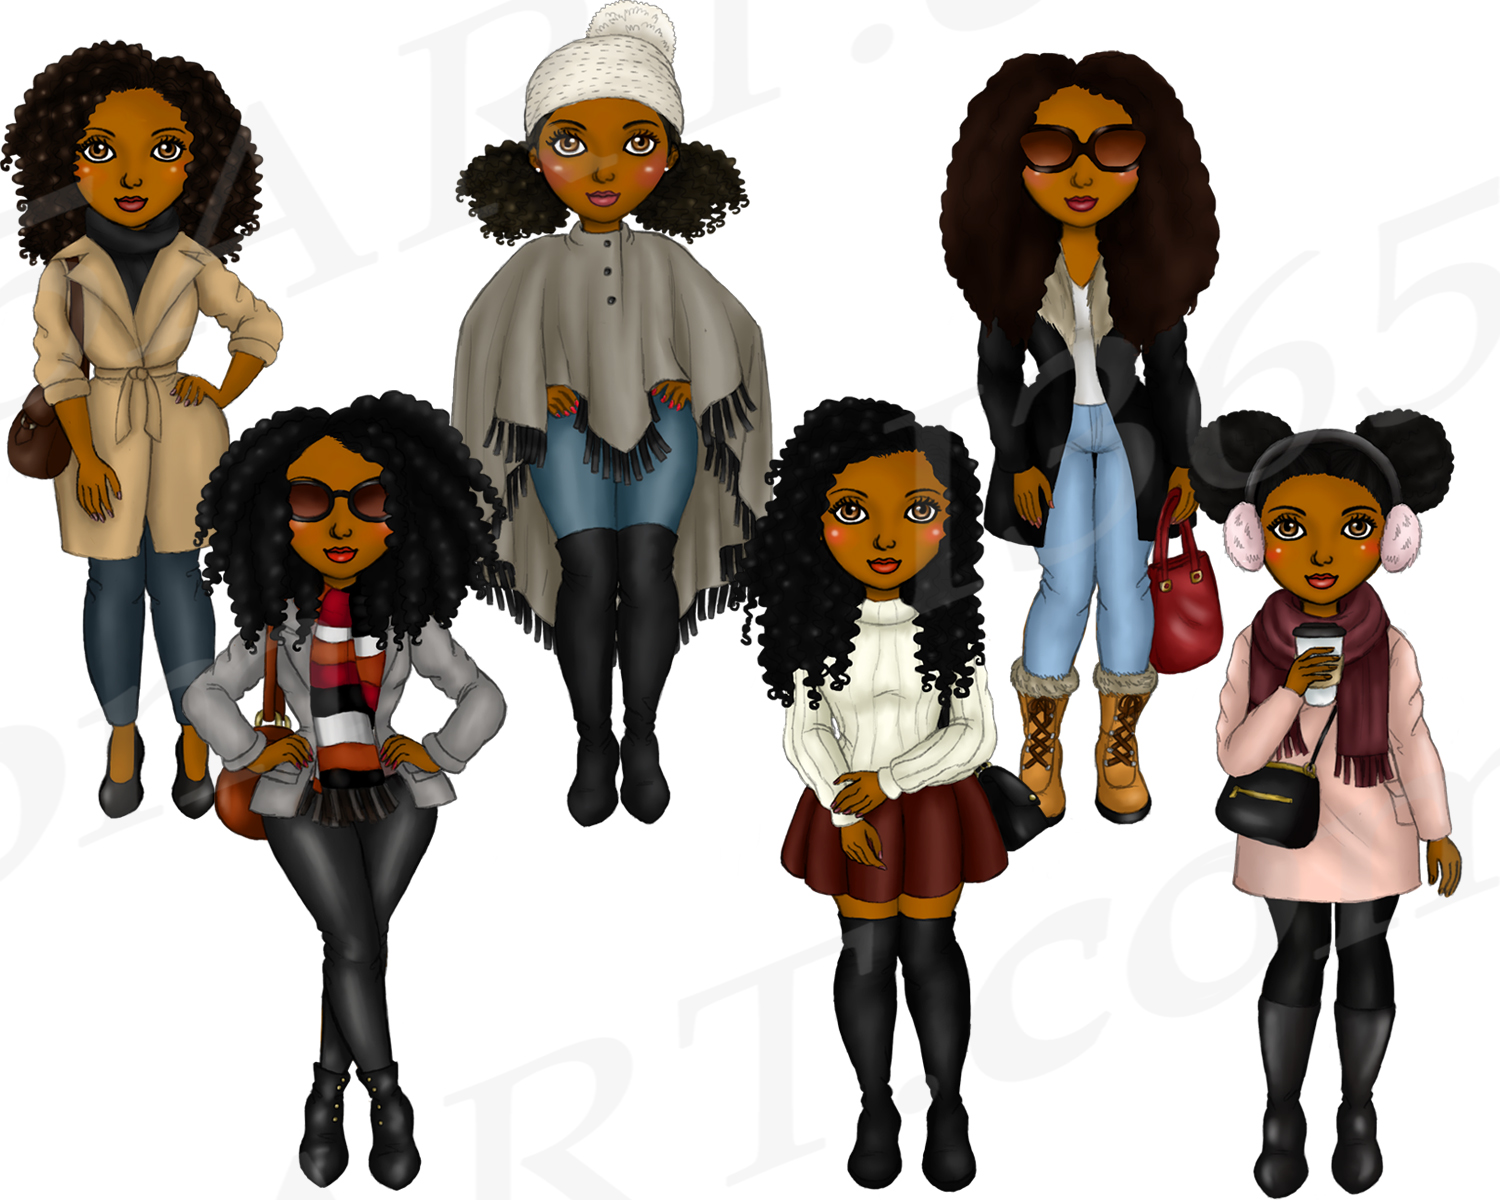 Winter Fashion Girls Black Natural Hair Planner Clipart example image 3